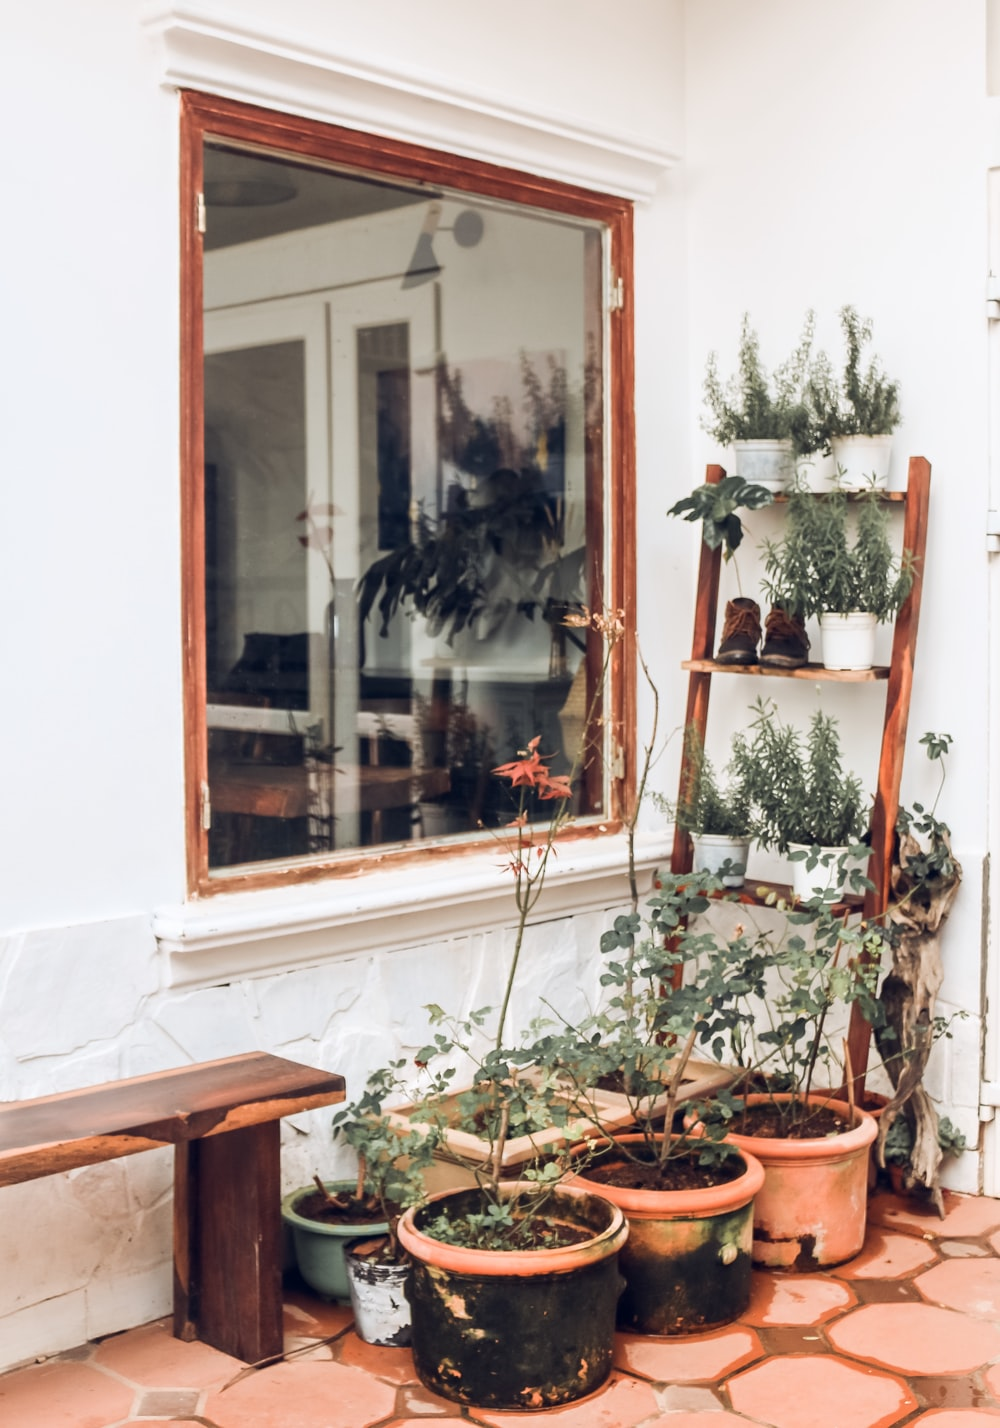 six flower pots in front of brown wooden framed clear glass window